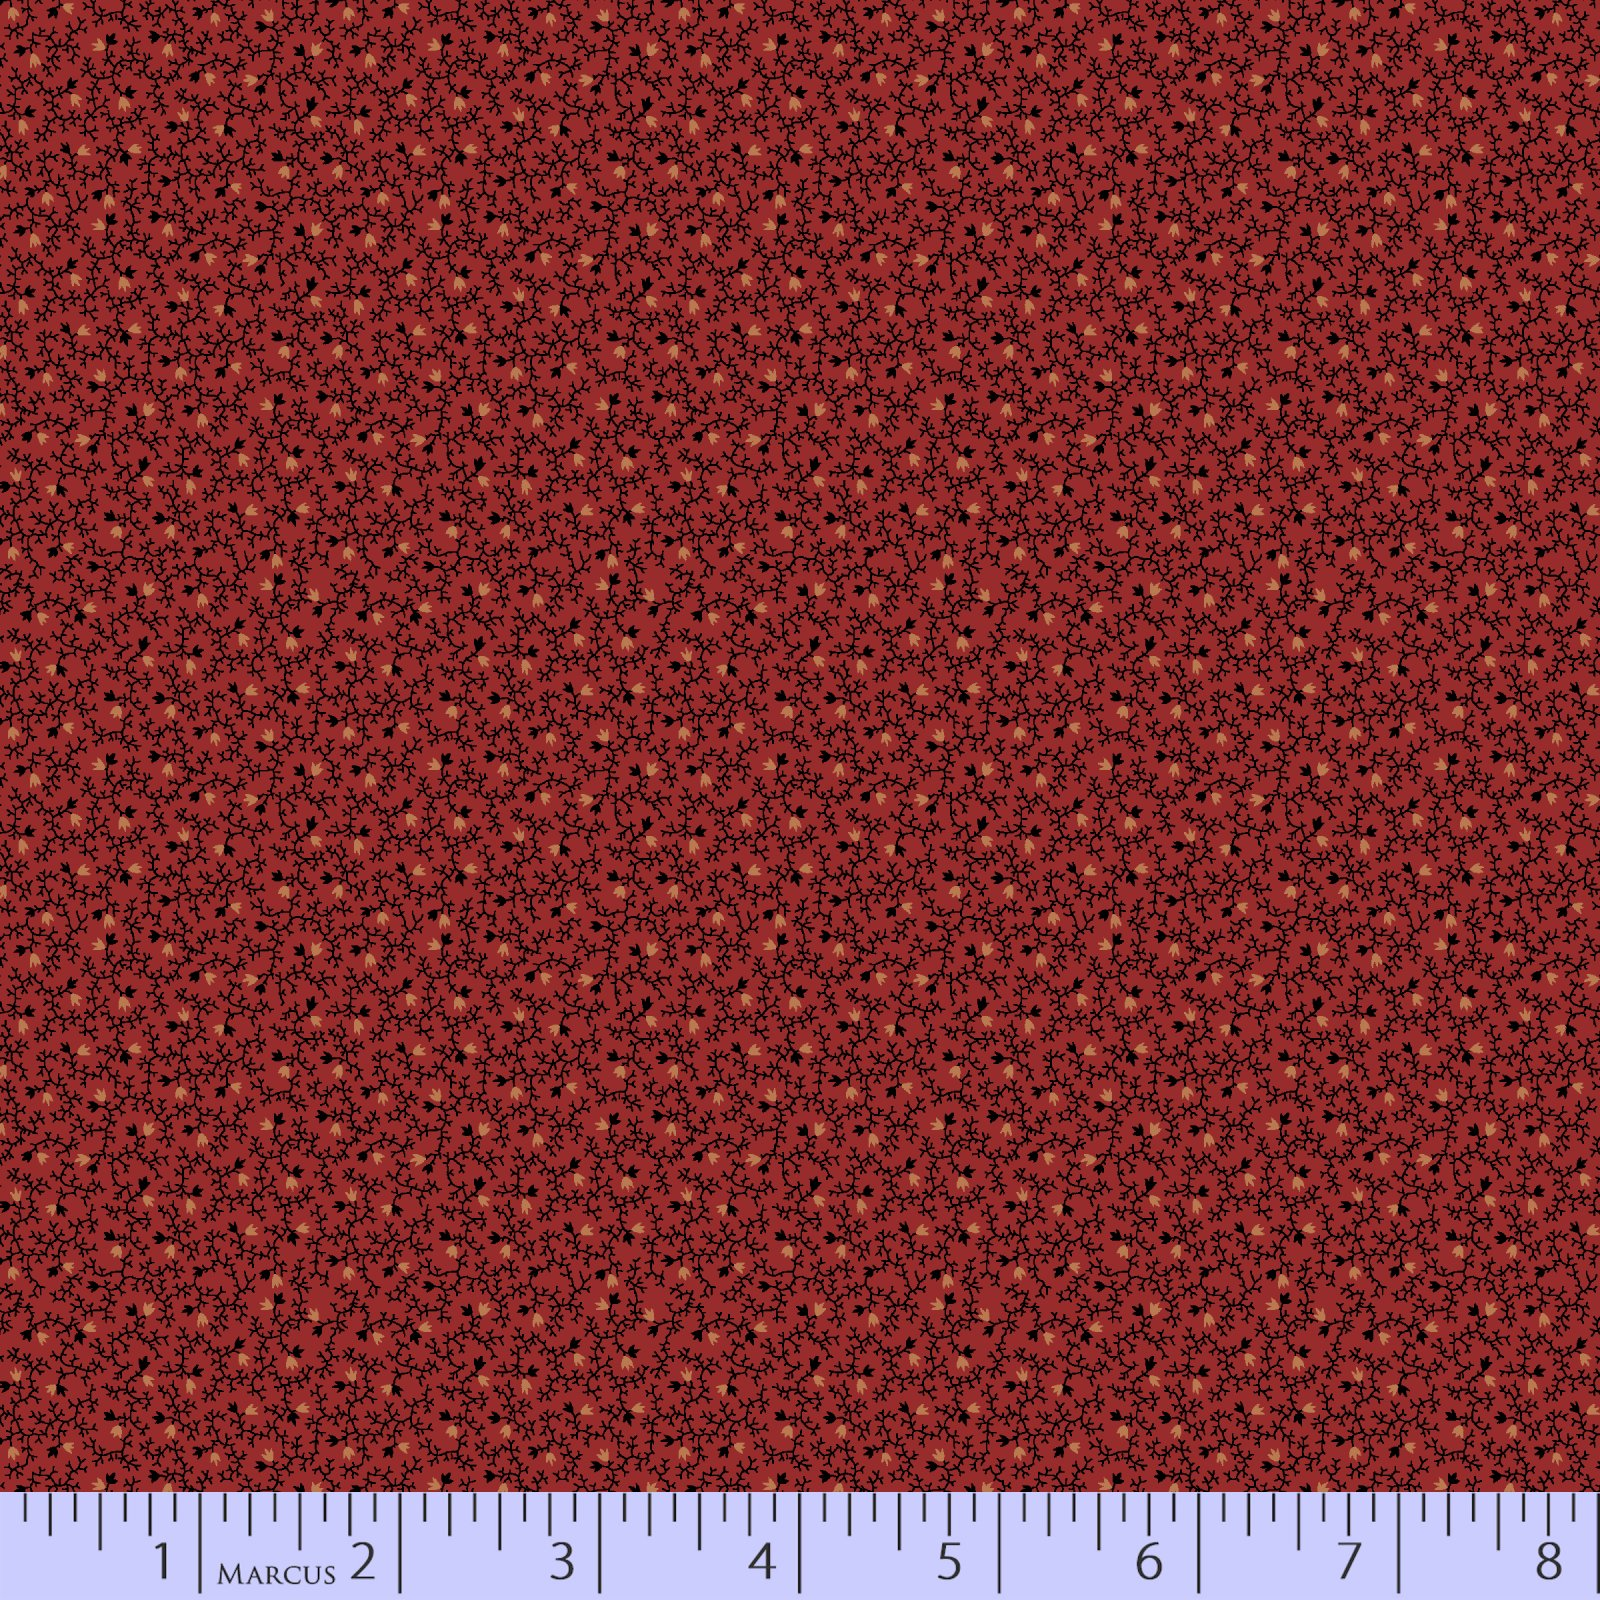 Tiny Floral Fabric - Deep Red Bess's Flower Garden Collection from Marcus Fabrics